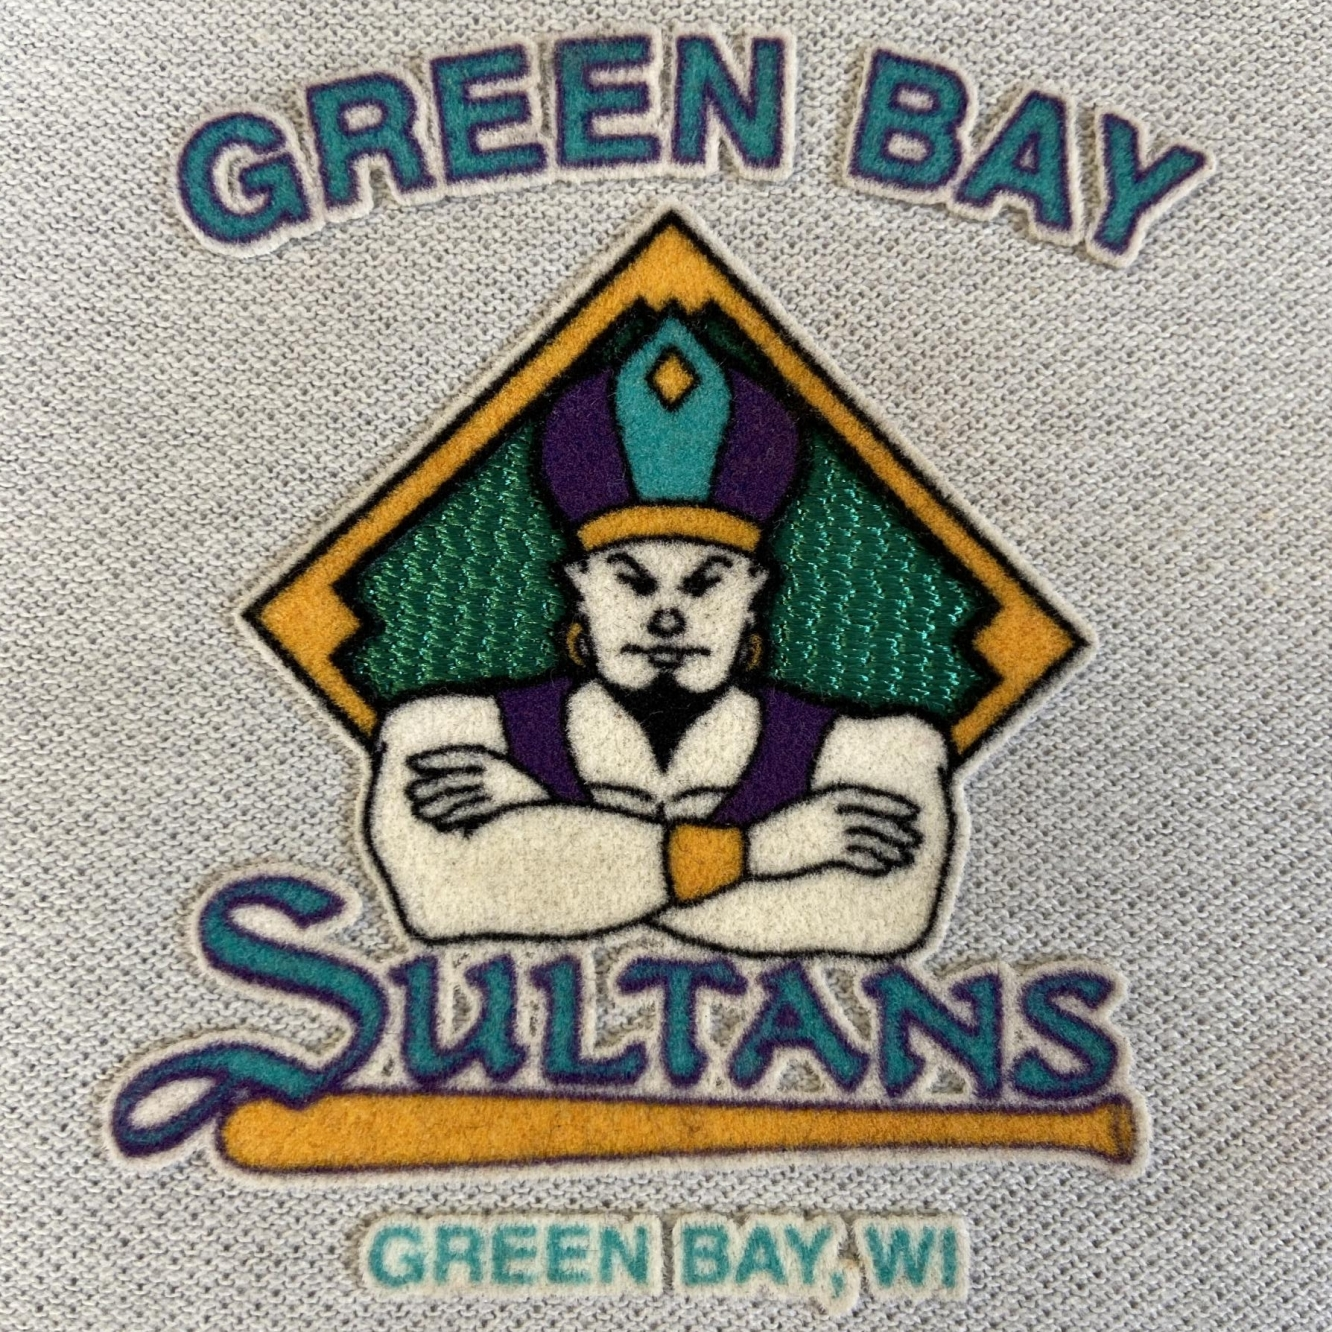 Green Bay Sultans Patch